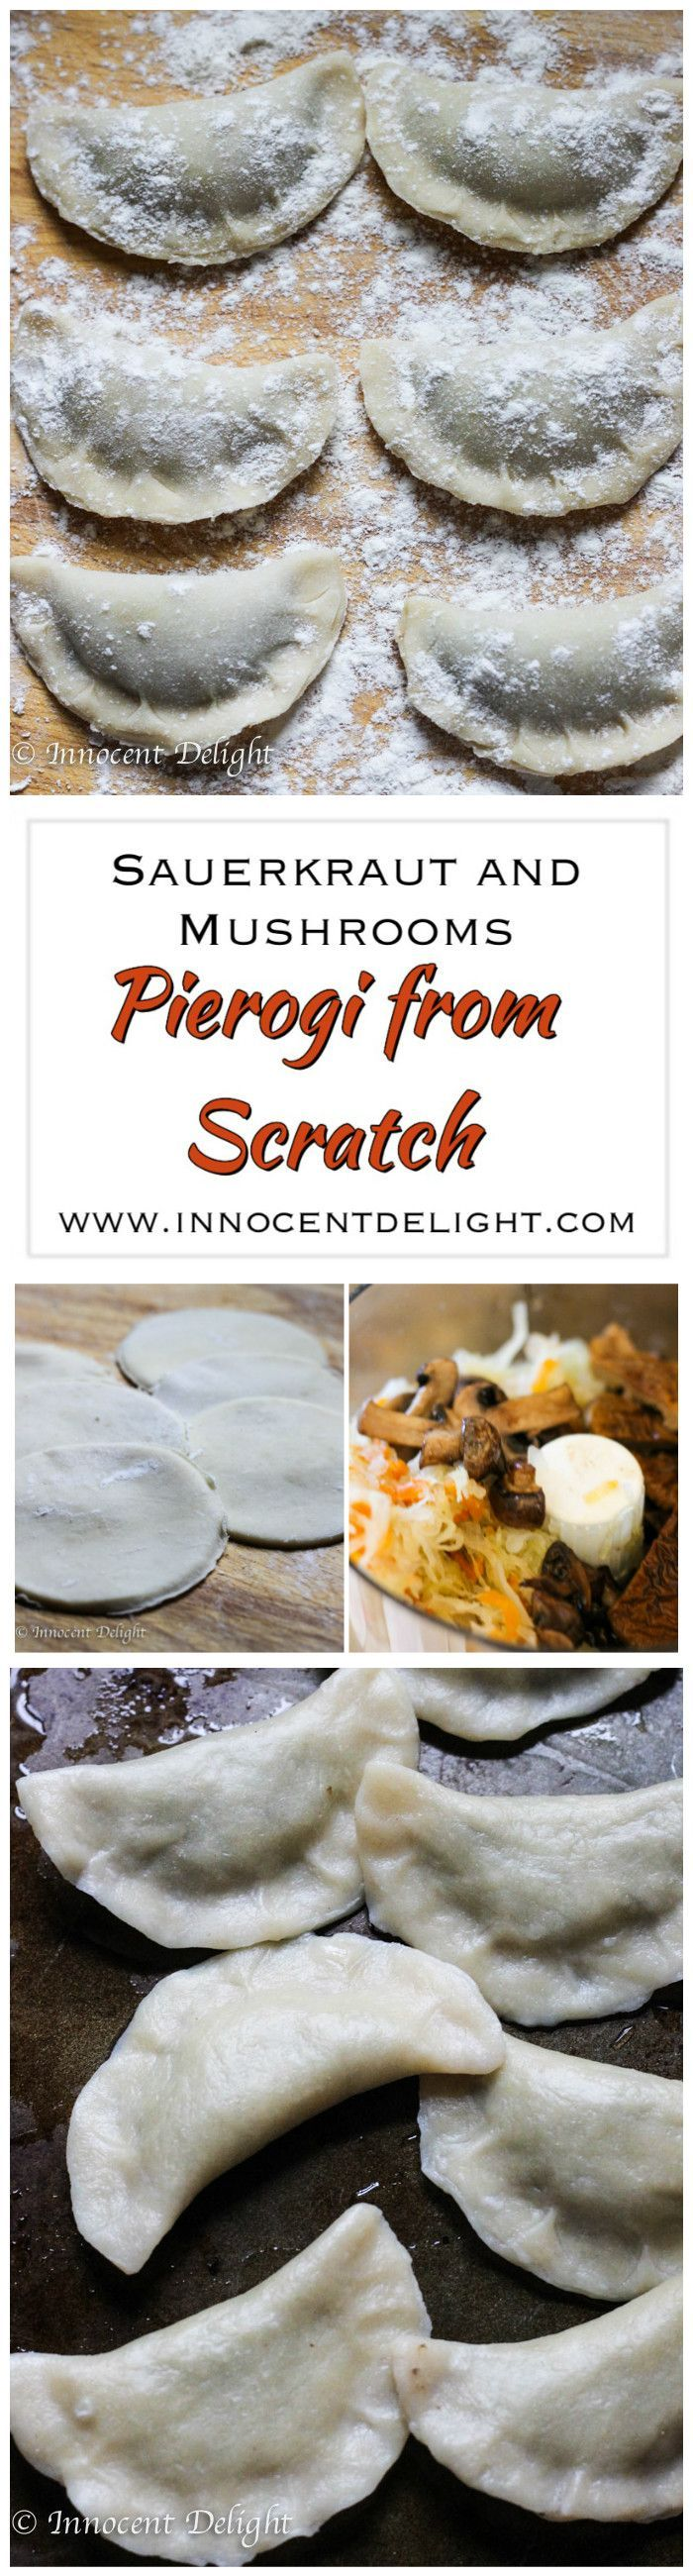 Sauerkraut and Mushrooms Pierogi from Scratch – follow this recipe to learn how pierogi should actually be made.